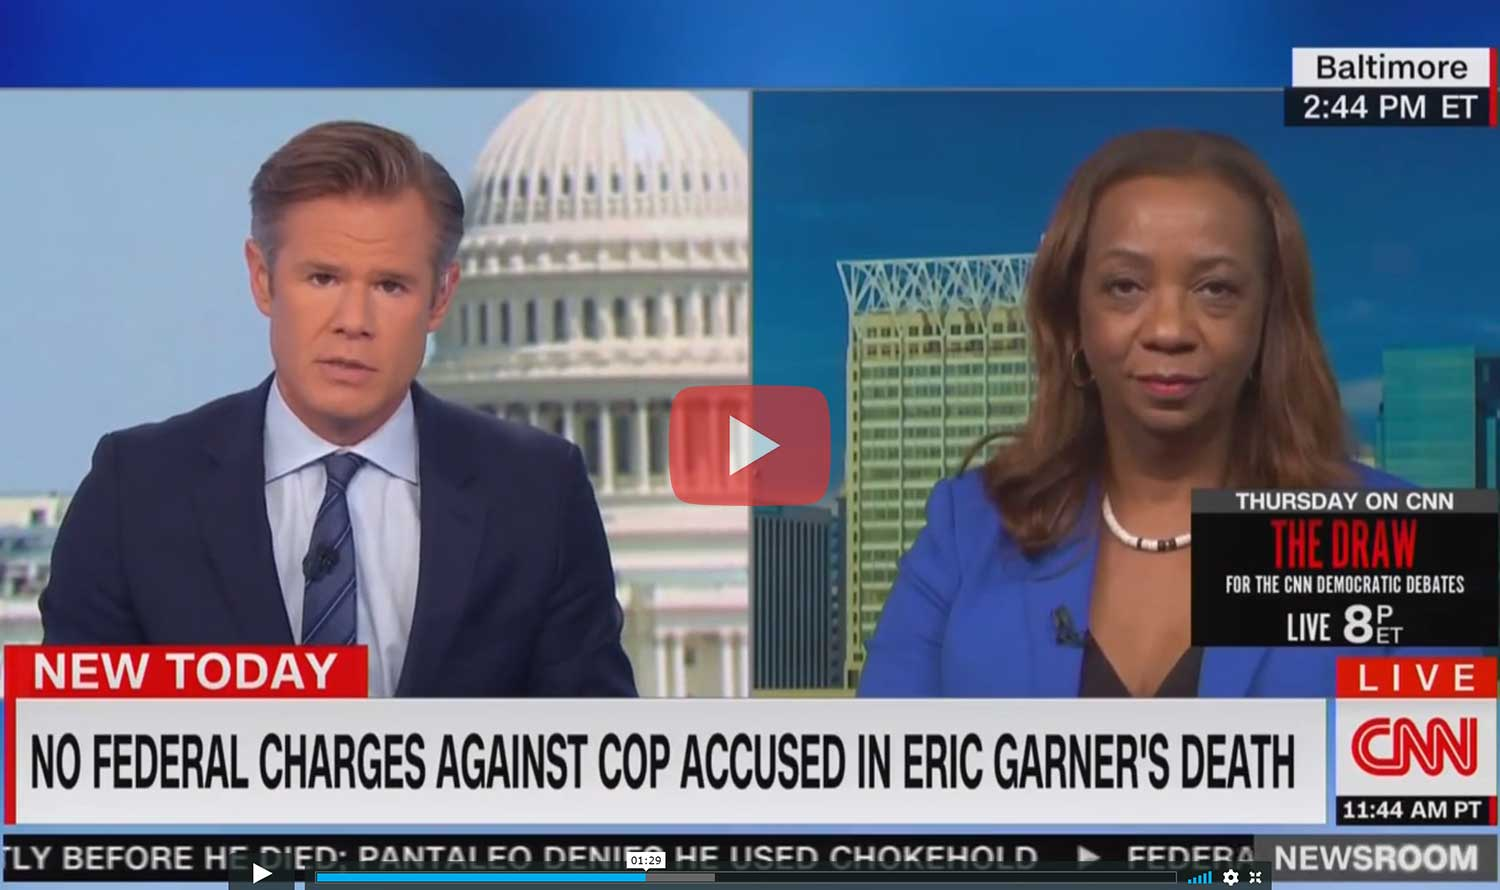 CNN – No Federal Charges to be Filed in Eric Garner Case